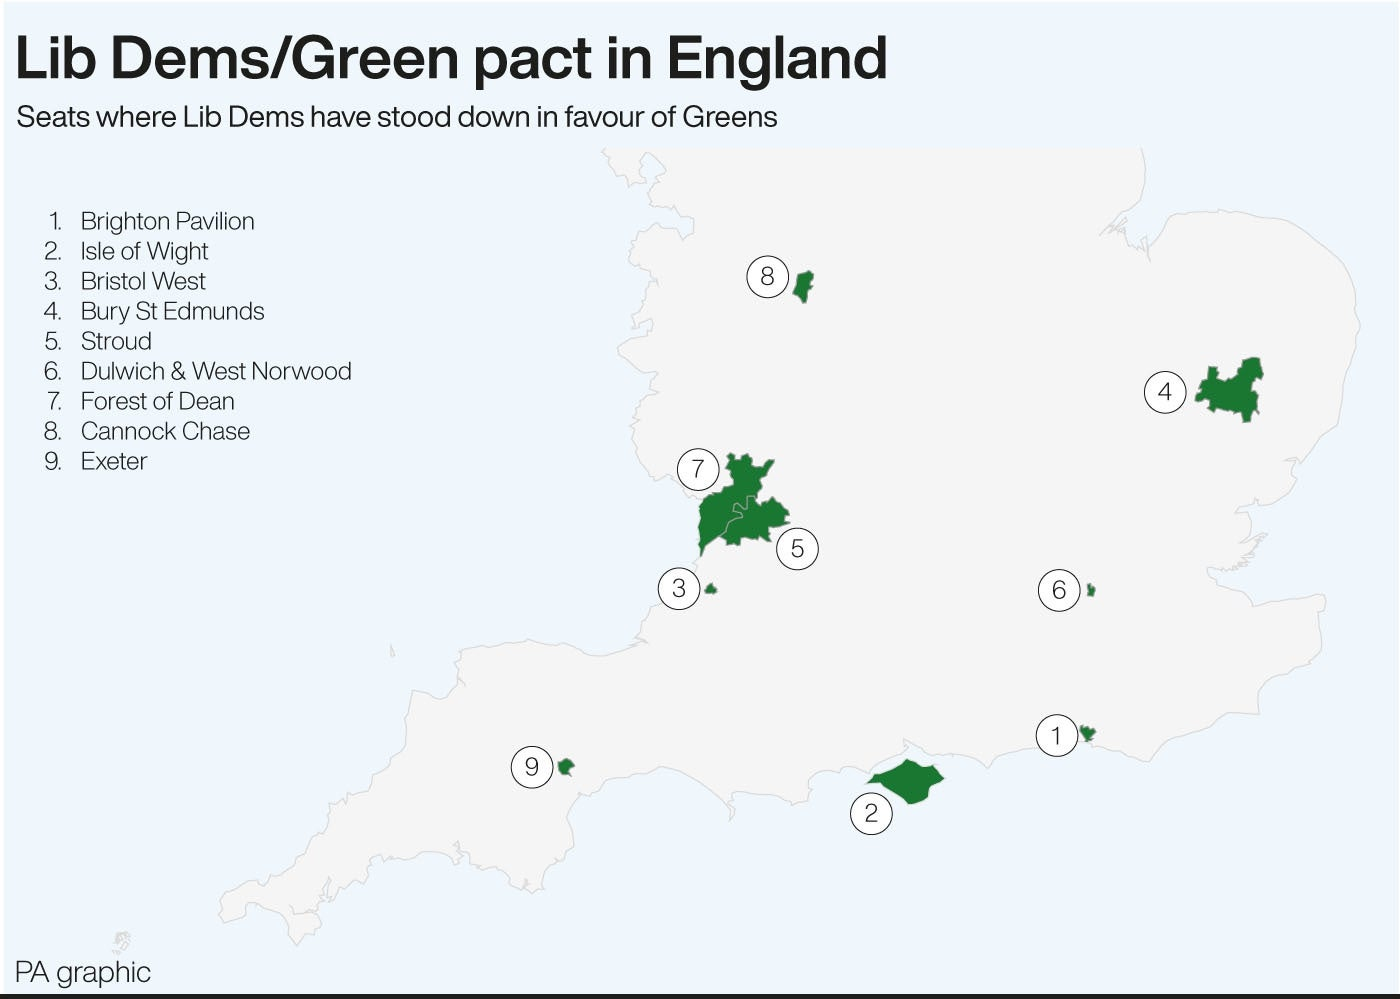 Lib Dems/Green pact in England